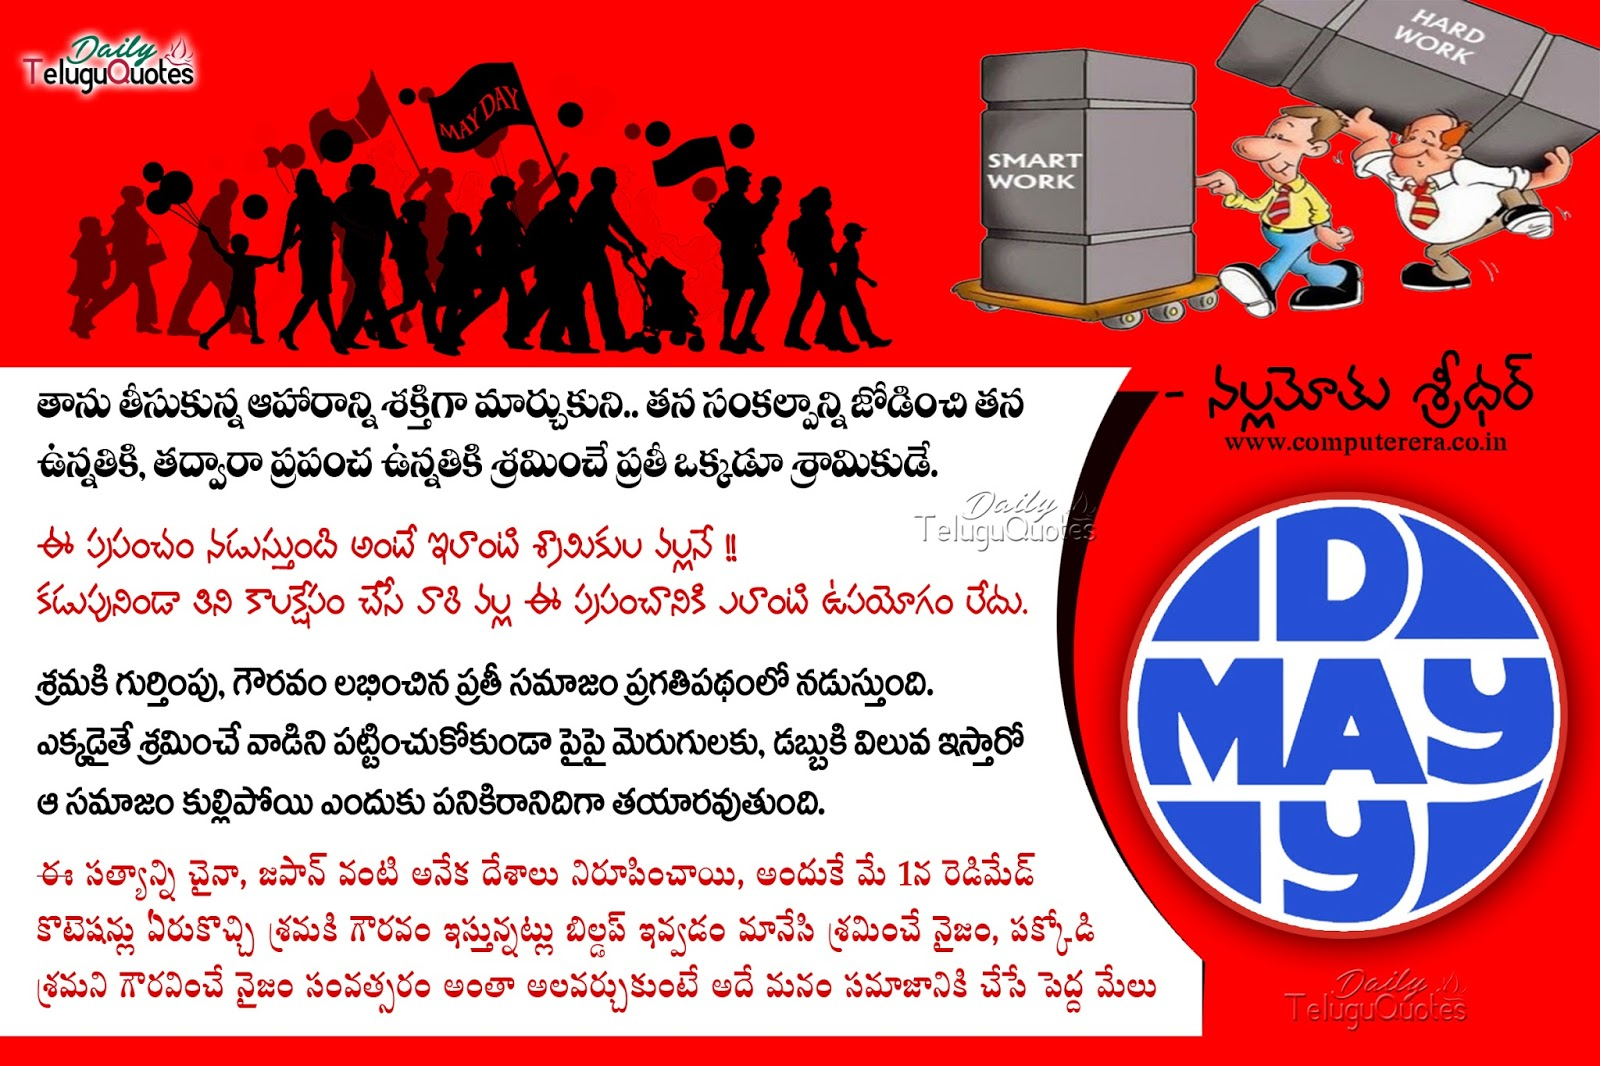 Nallamothu Sridhar May Day Telugu Motivational Words And Messages - Motivational words of the day